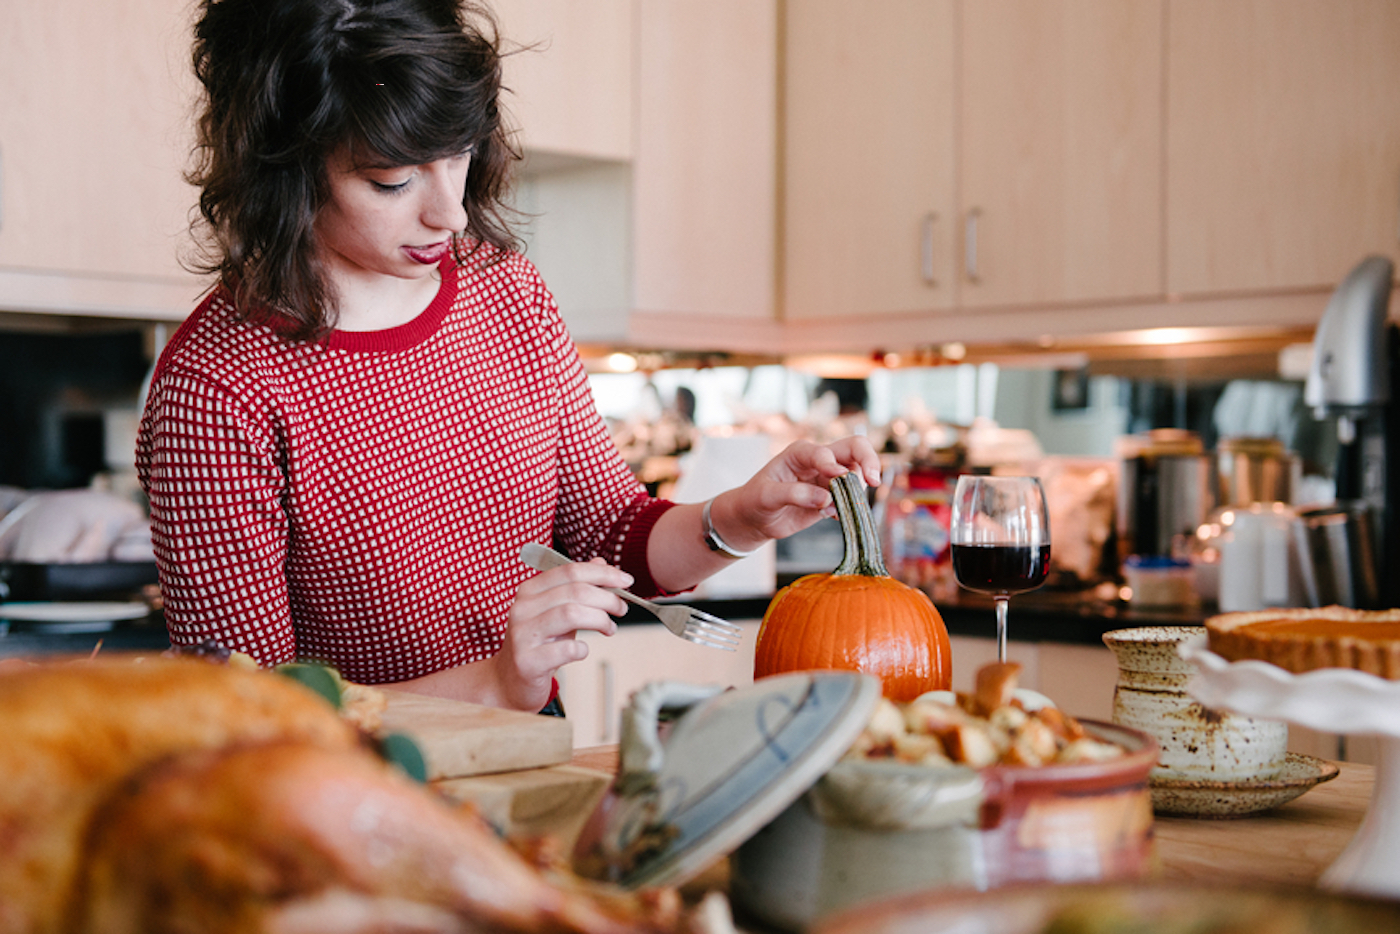 Thumbnail for How To Host an Intimate Thanksgiving With Minimal Food Waste and Maximum Meaning